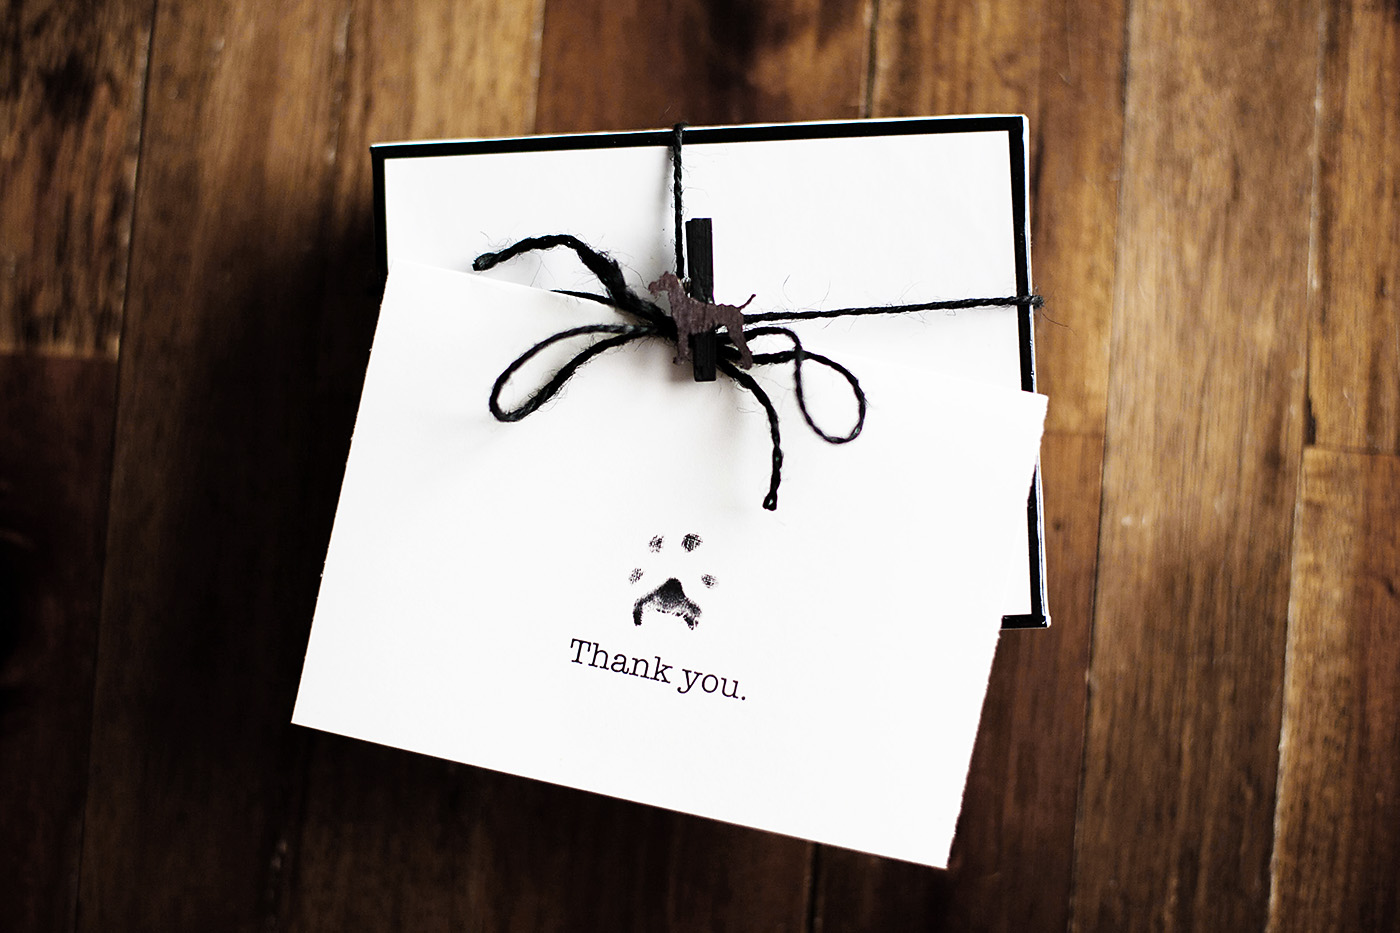 Thank You from the Dogs – Every day, care™